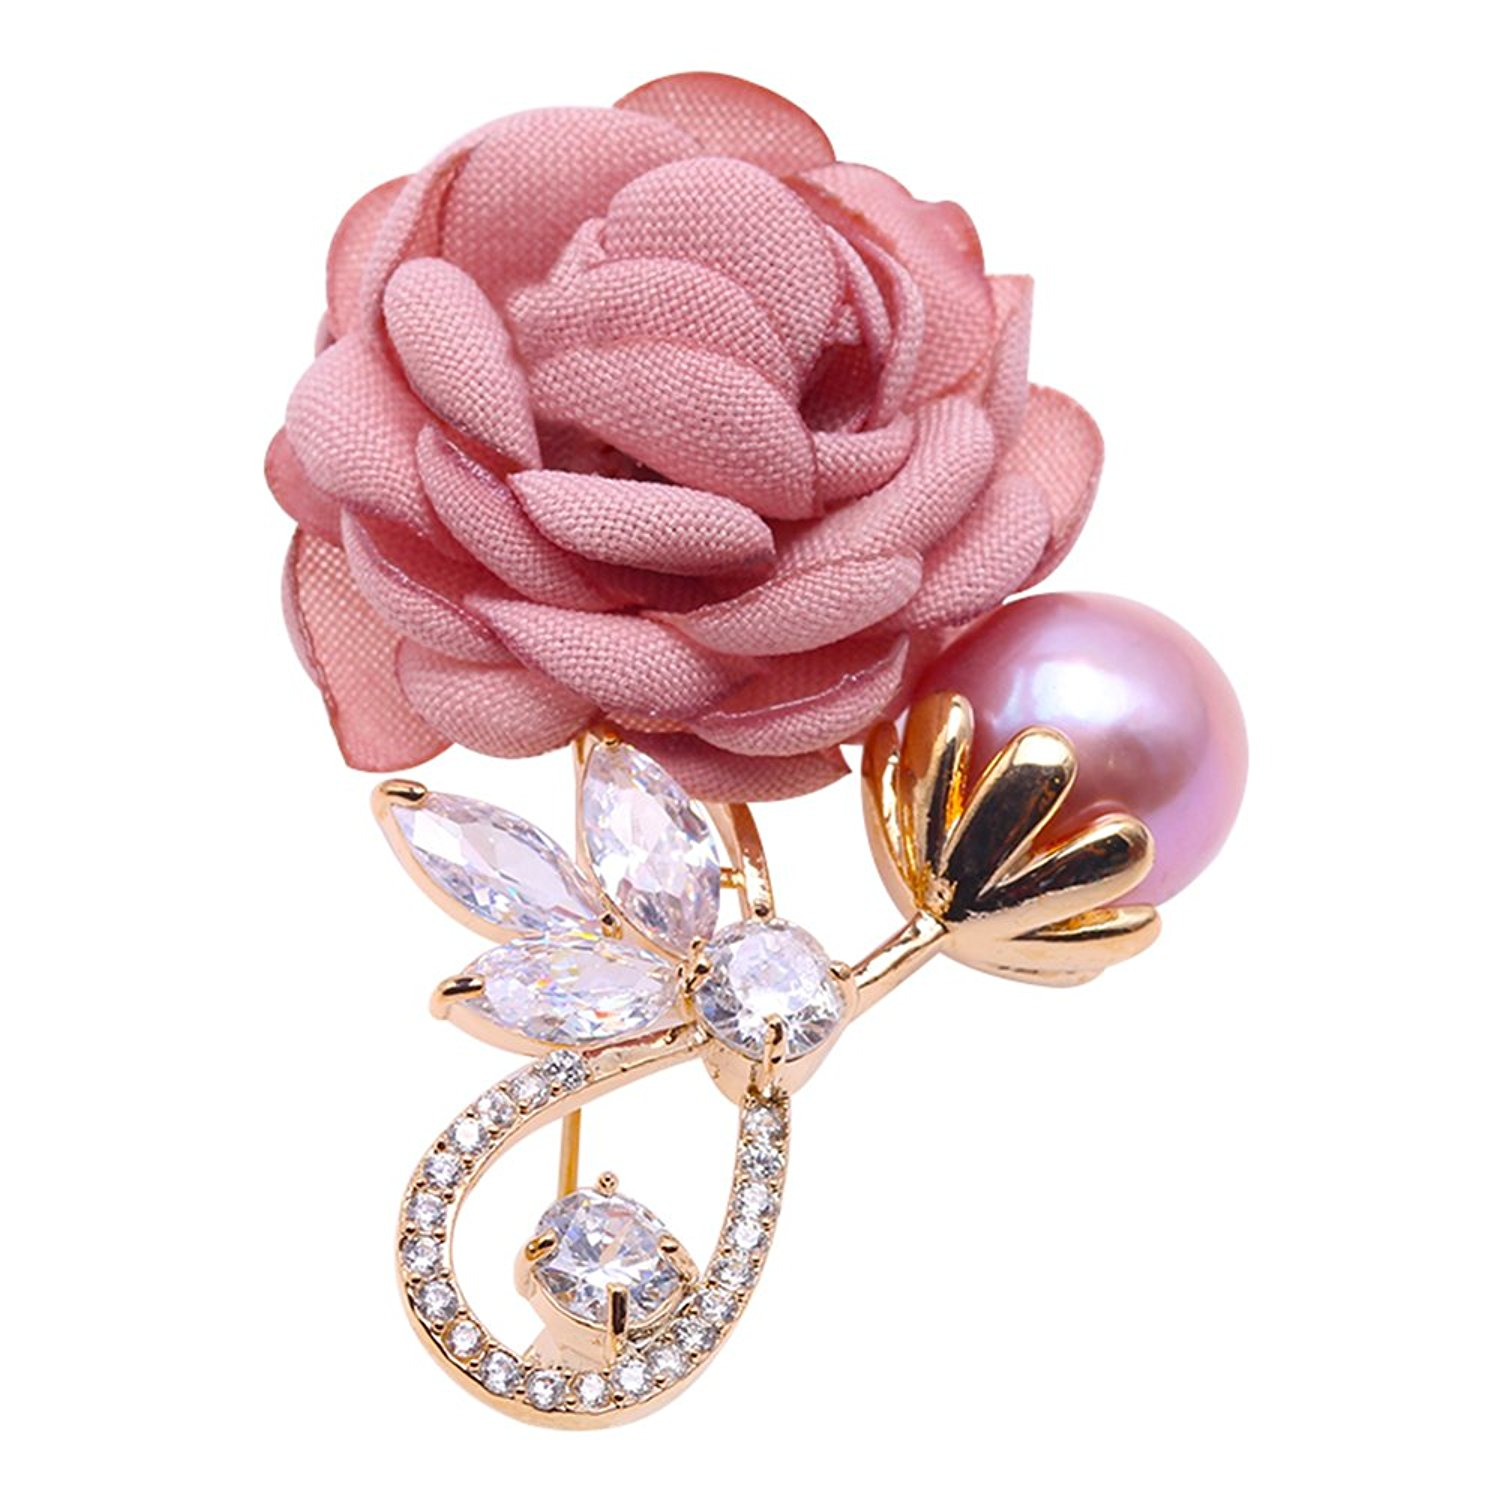 039f82aab20 Get Quotations · JYX Fine Rose Brooch Lavender Freshwater Pearl Brooch Pin  for Wedding